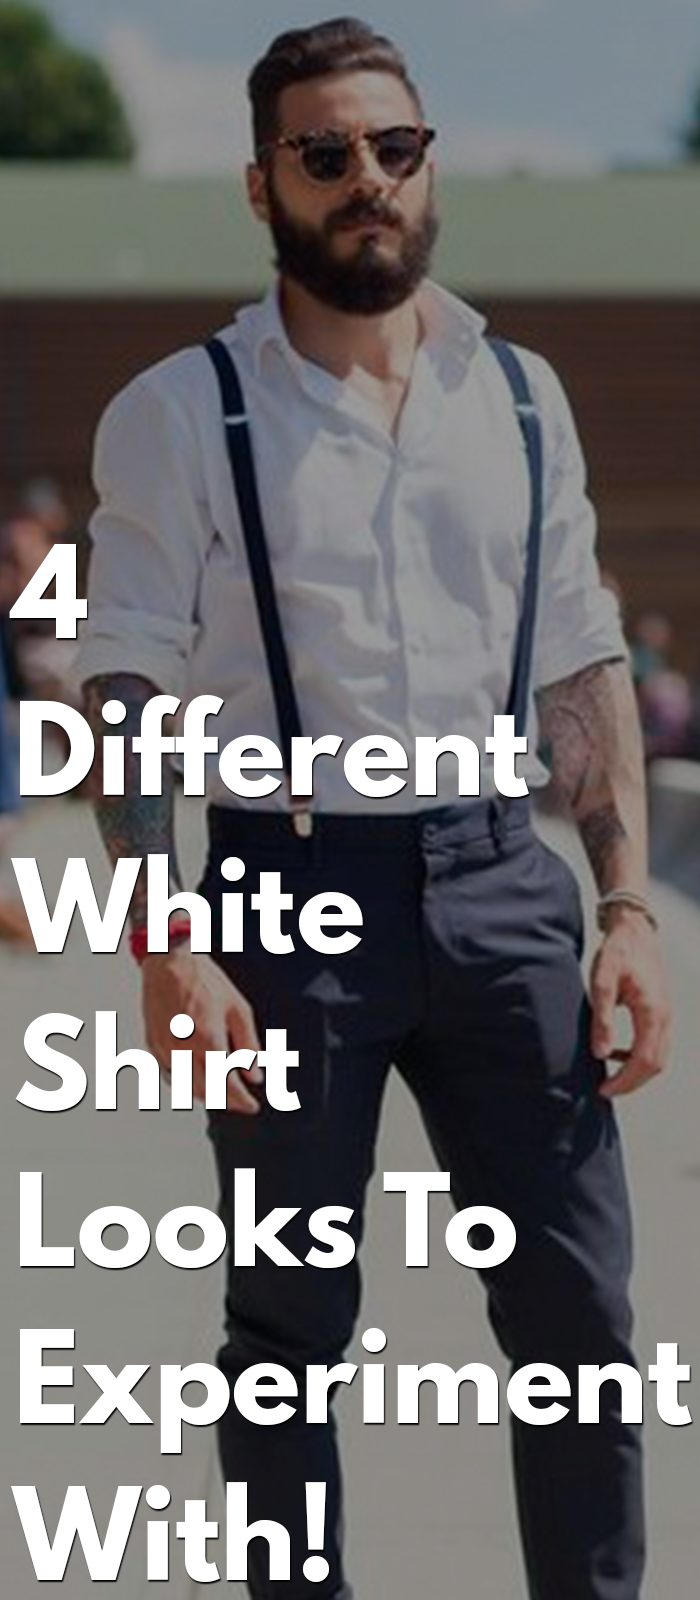 4 Different White Shirt Looks